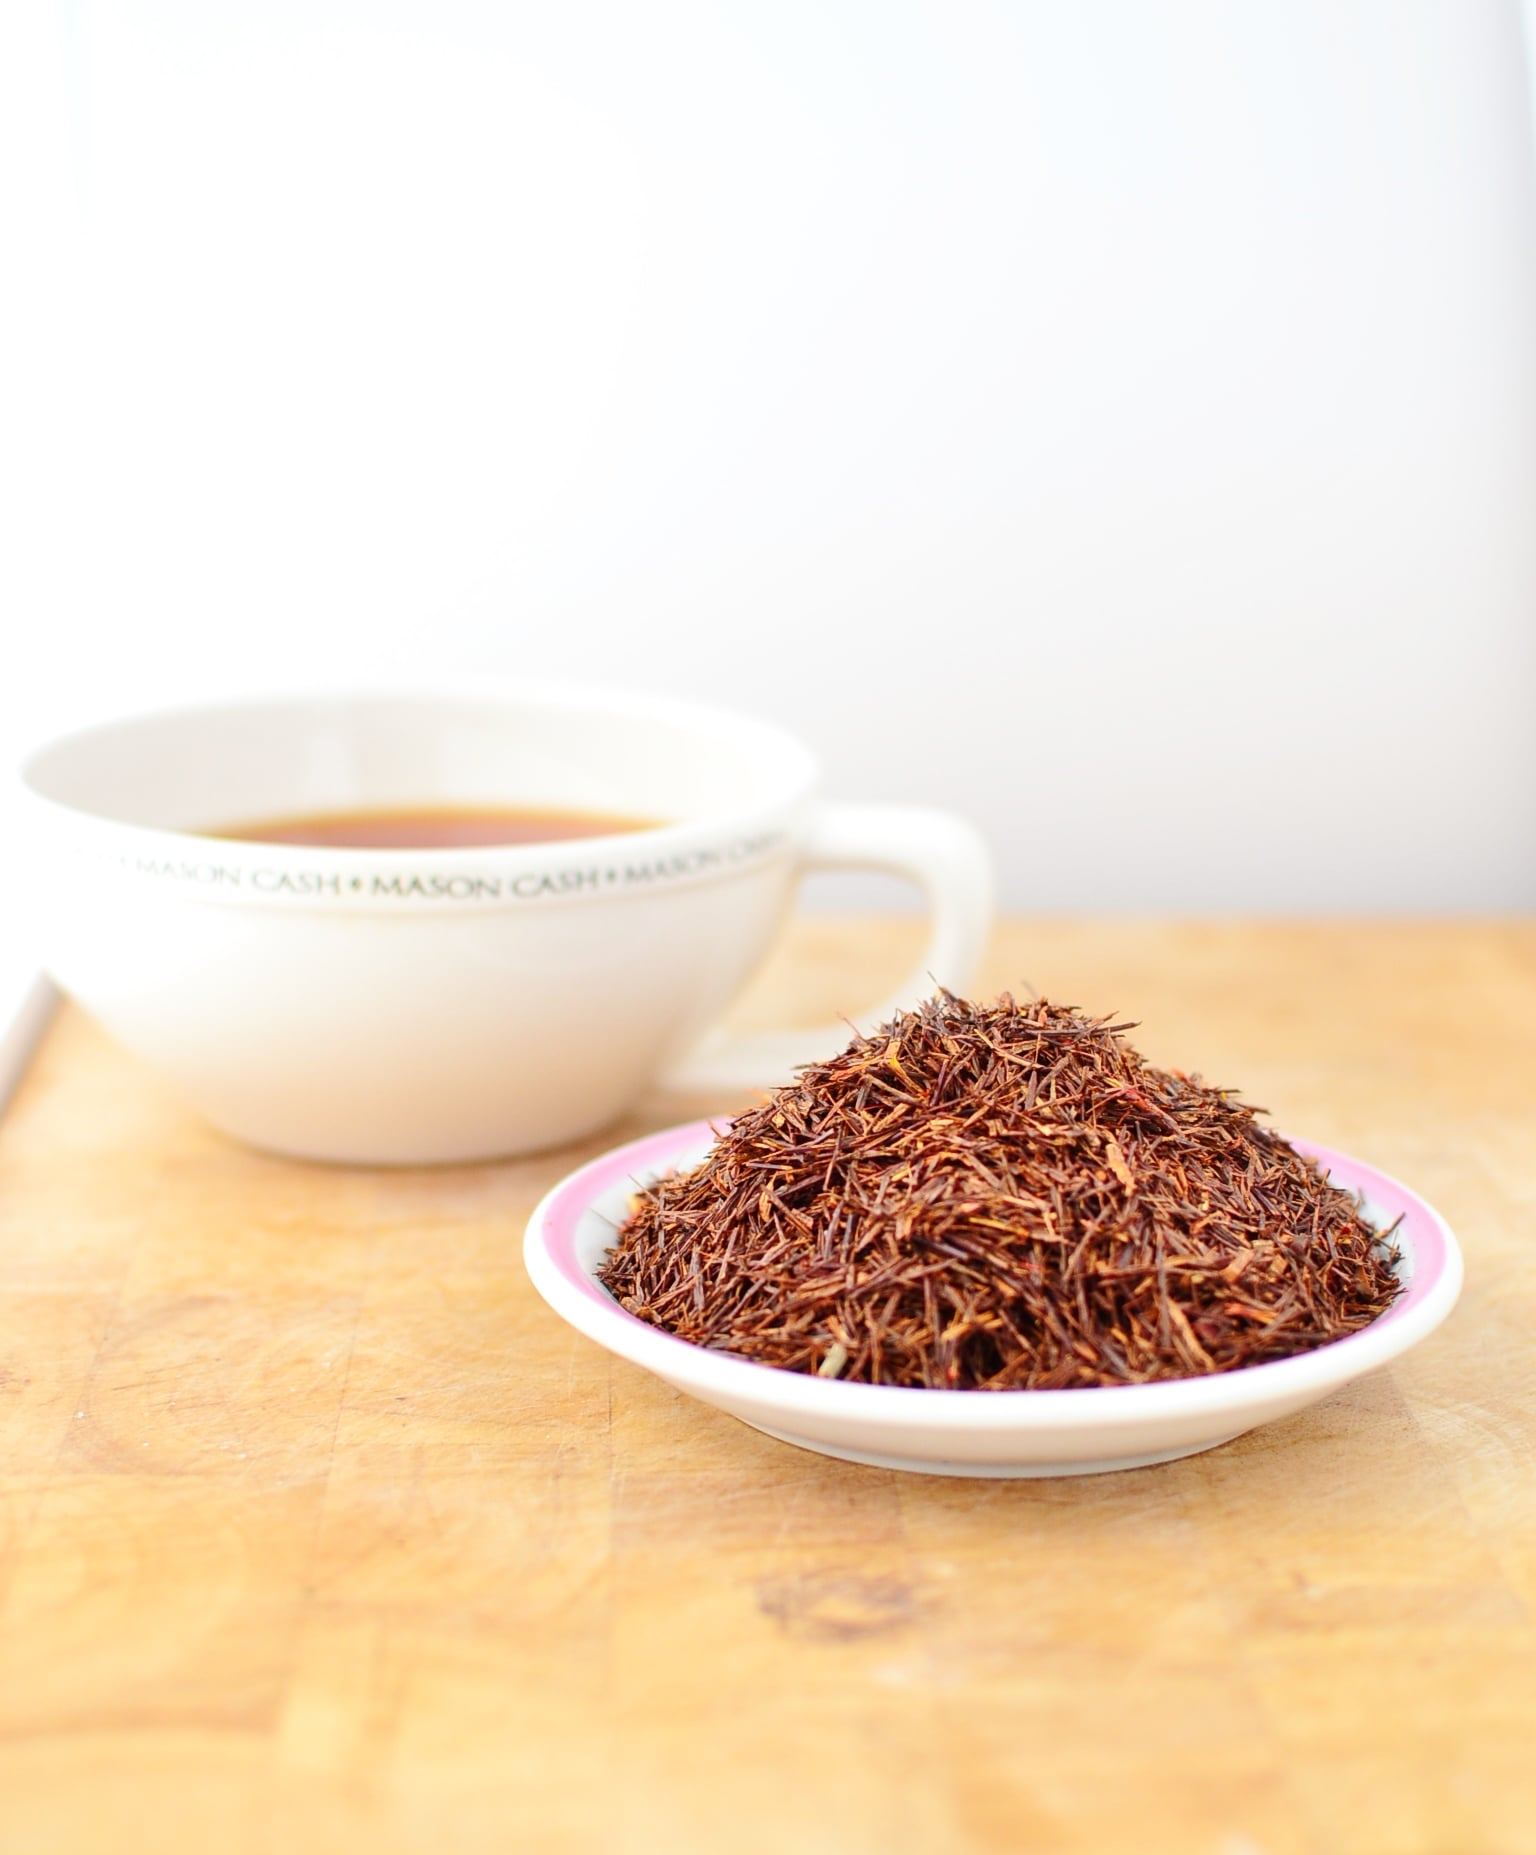 Rooibos leaves on top of small white plate, with rooibos tea in white cup in background.